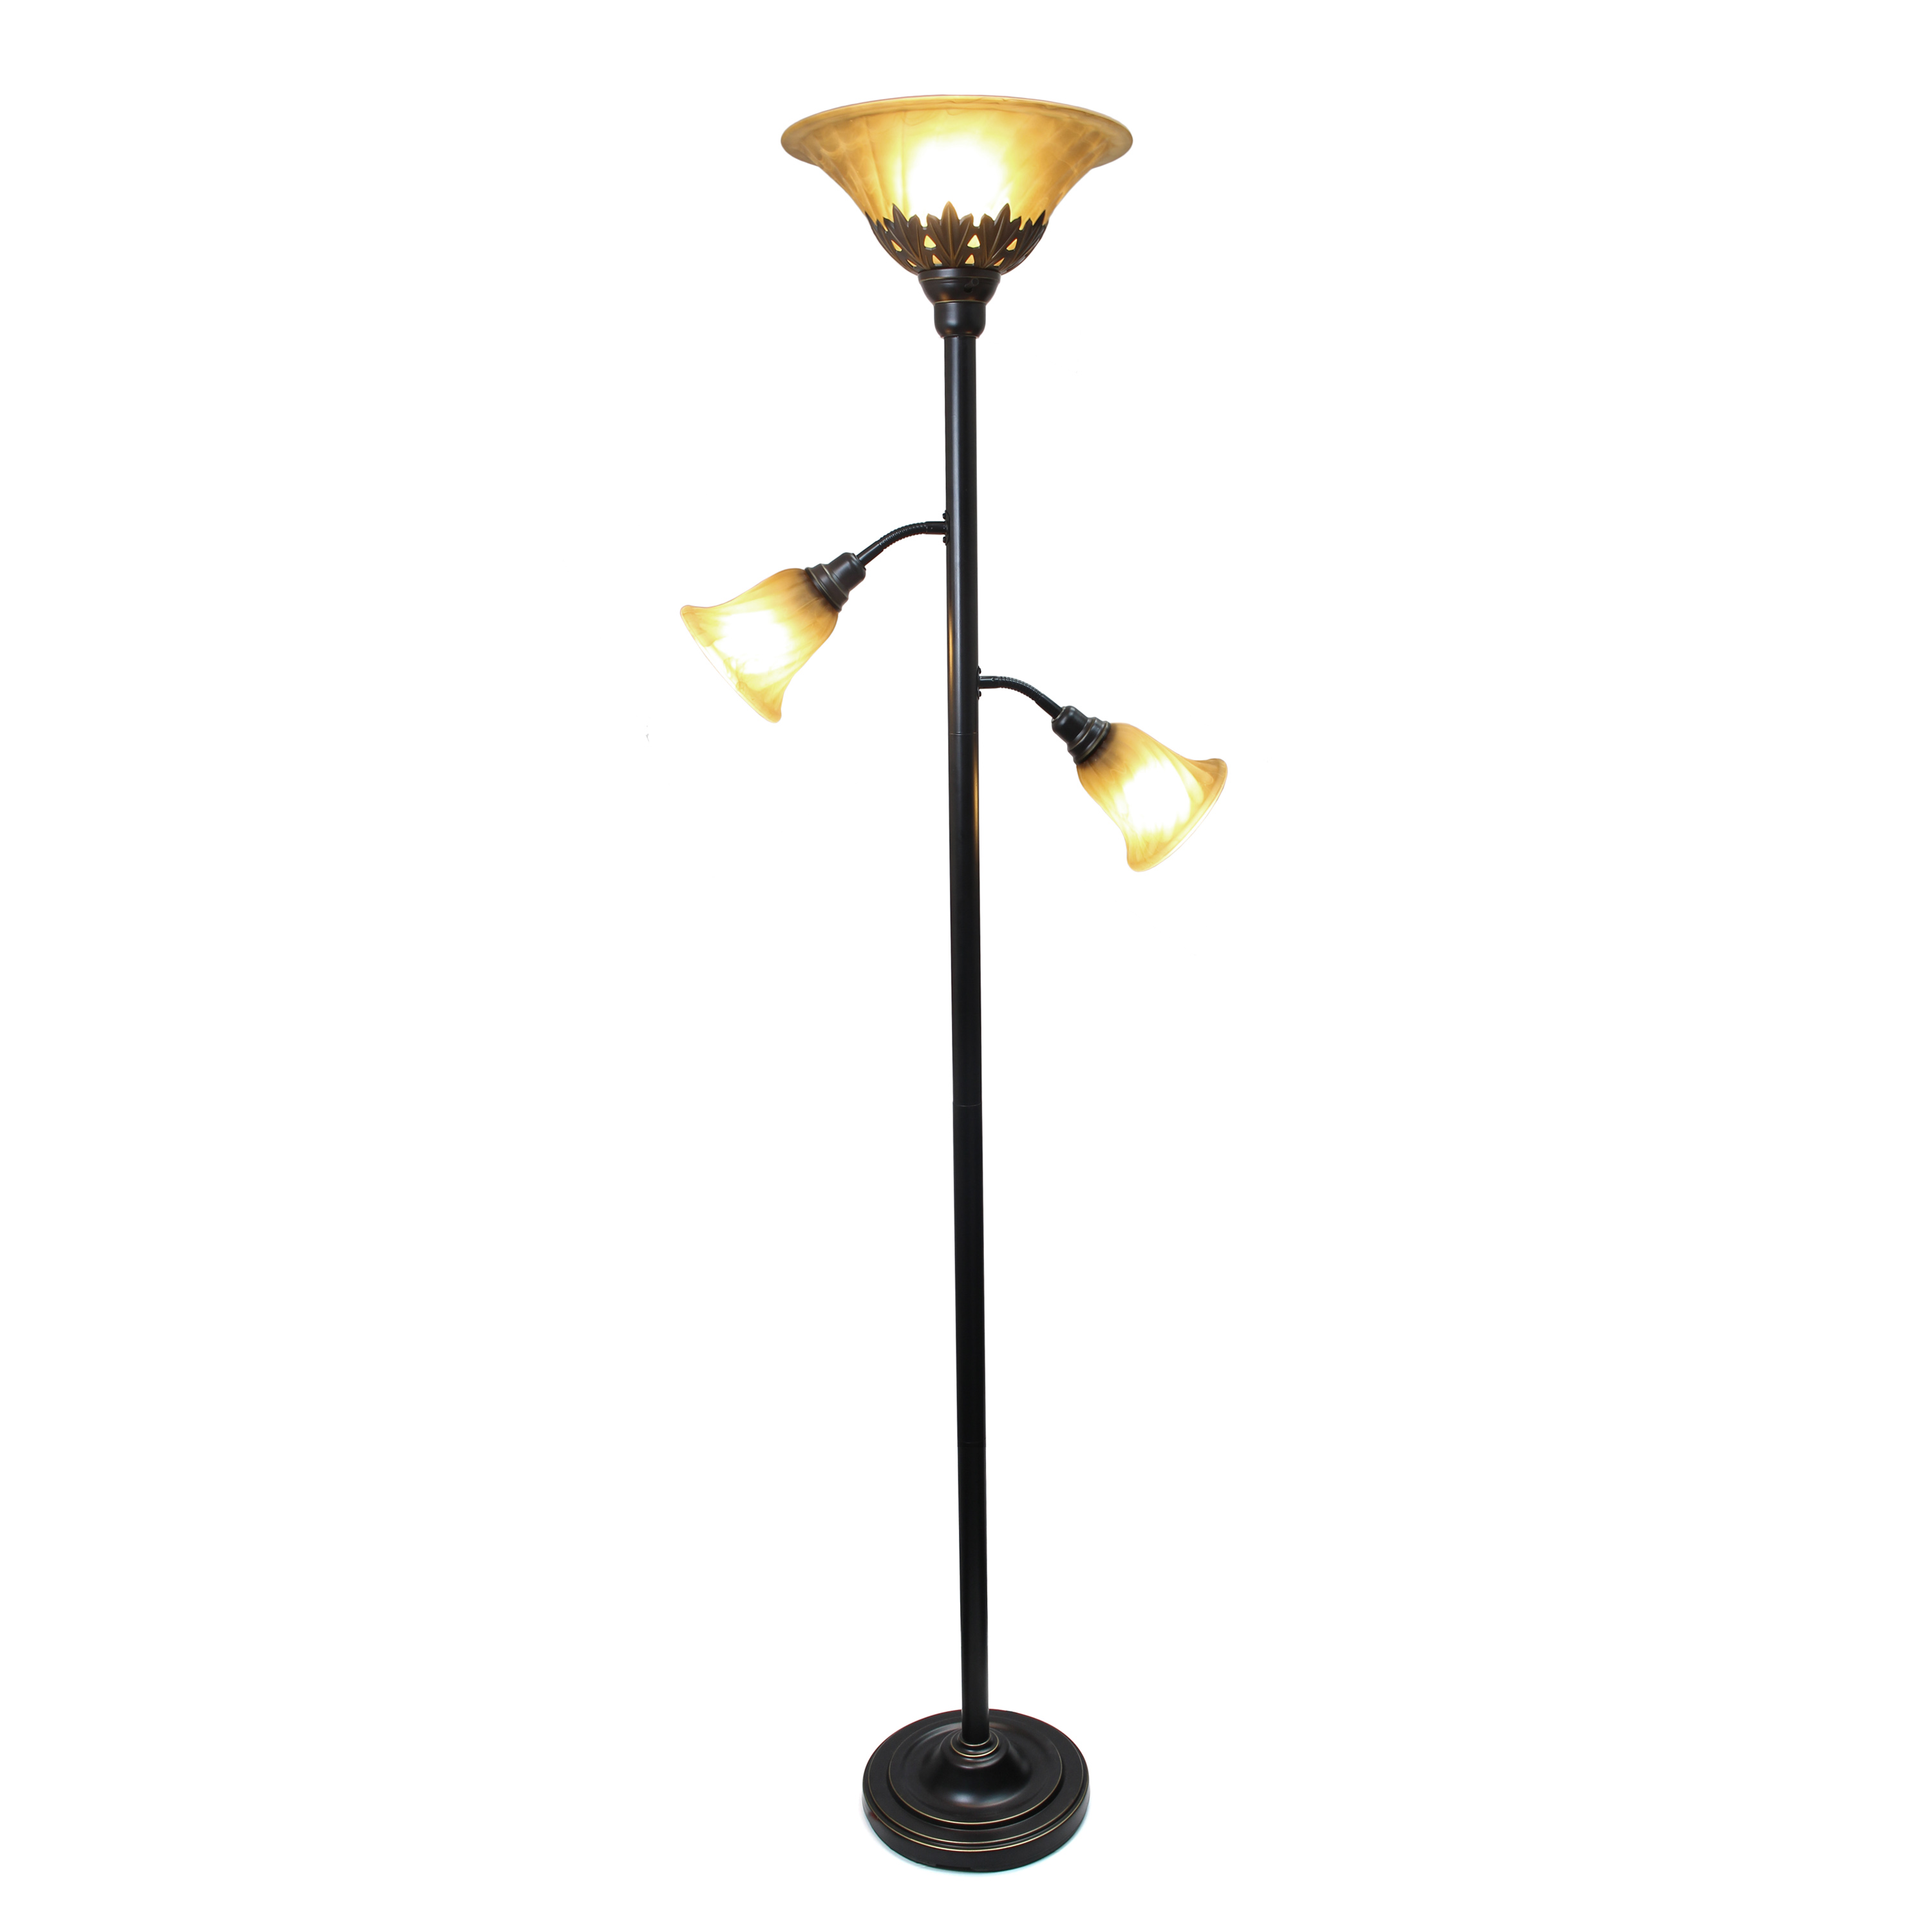 All The Rages LF2002-RBZ 3 Light Floor Lamp with Scalloped Glass Shades - Restoration Bronze - image 1 de 3